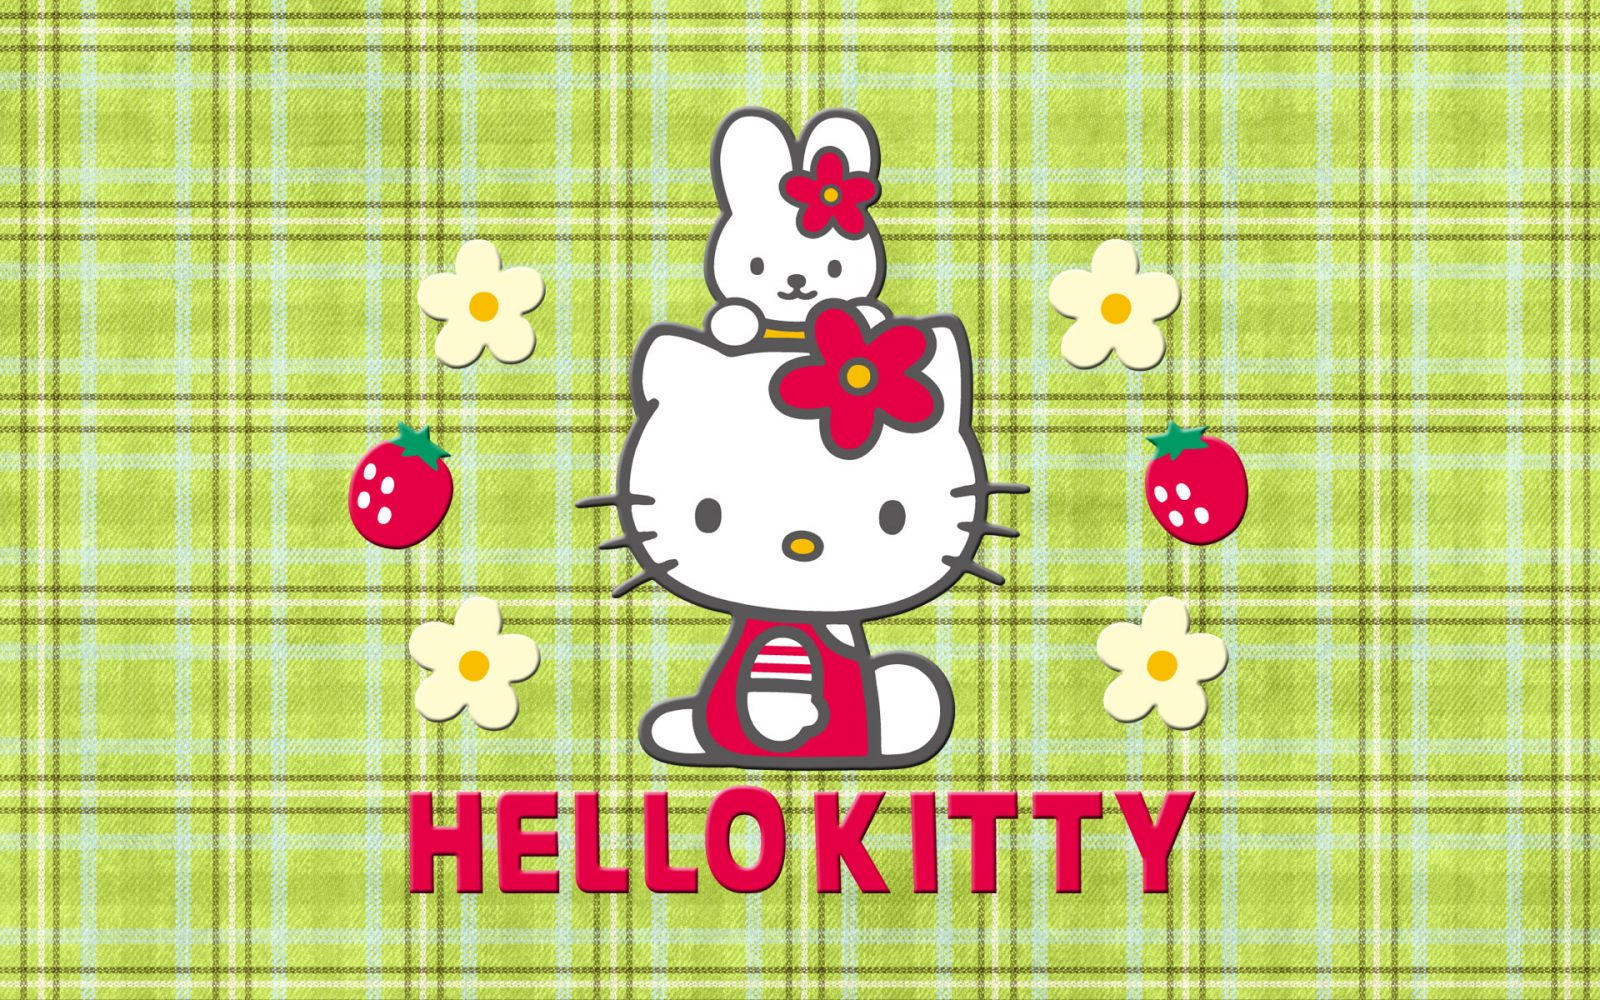 Hello Kitty e amigos